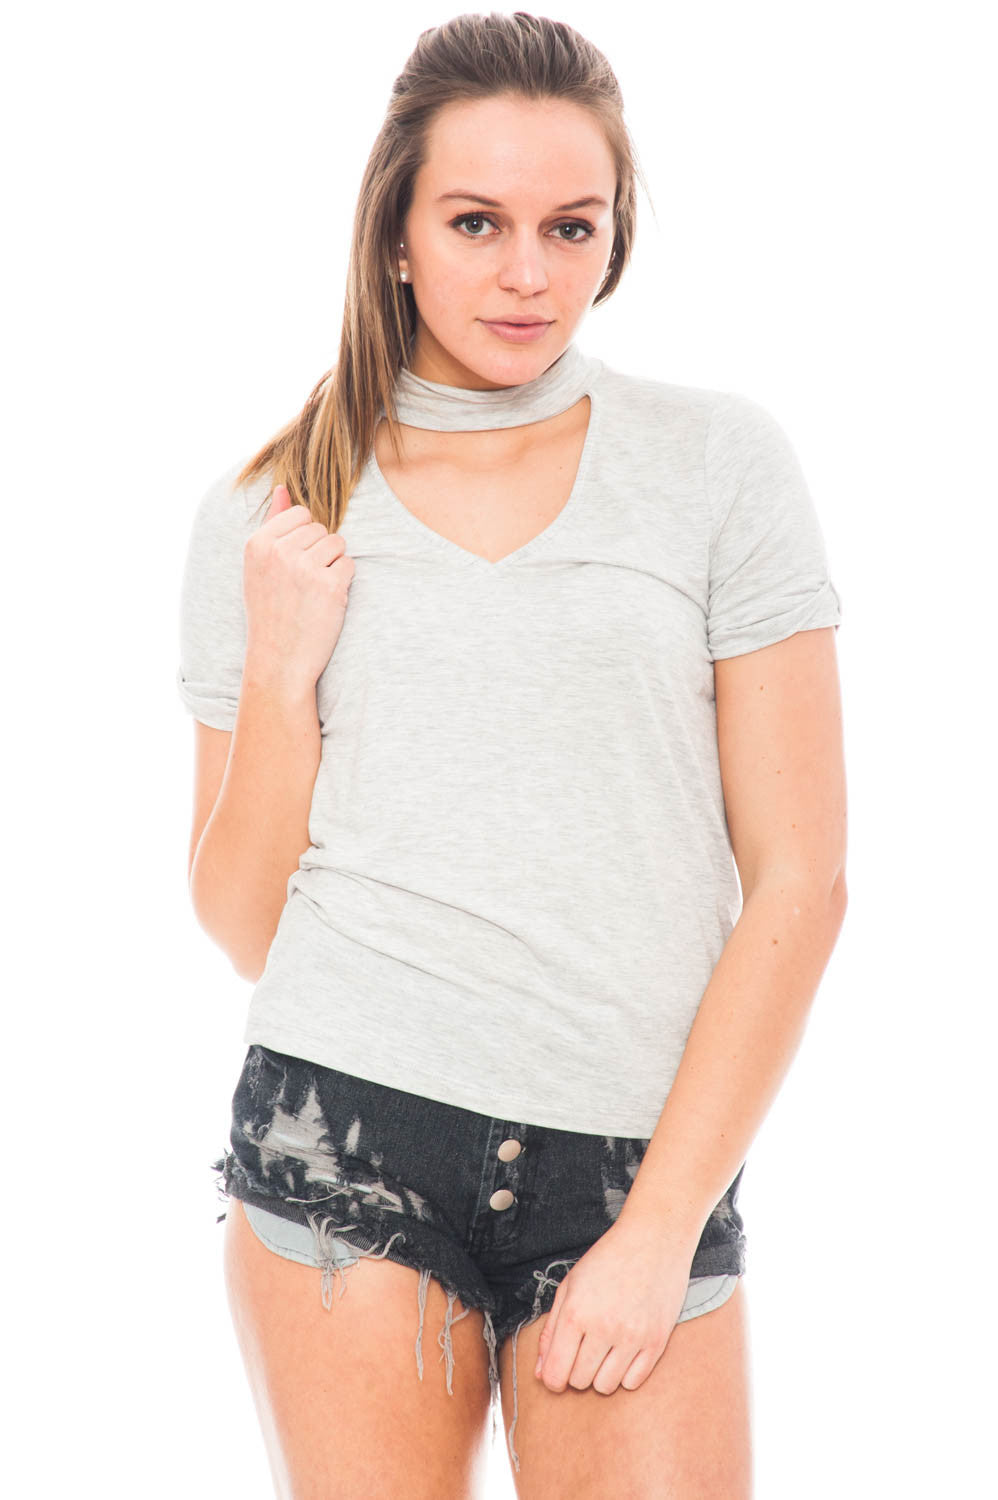 Shirt - Choker Tee by Everly